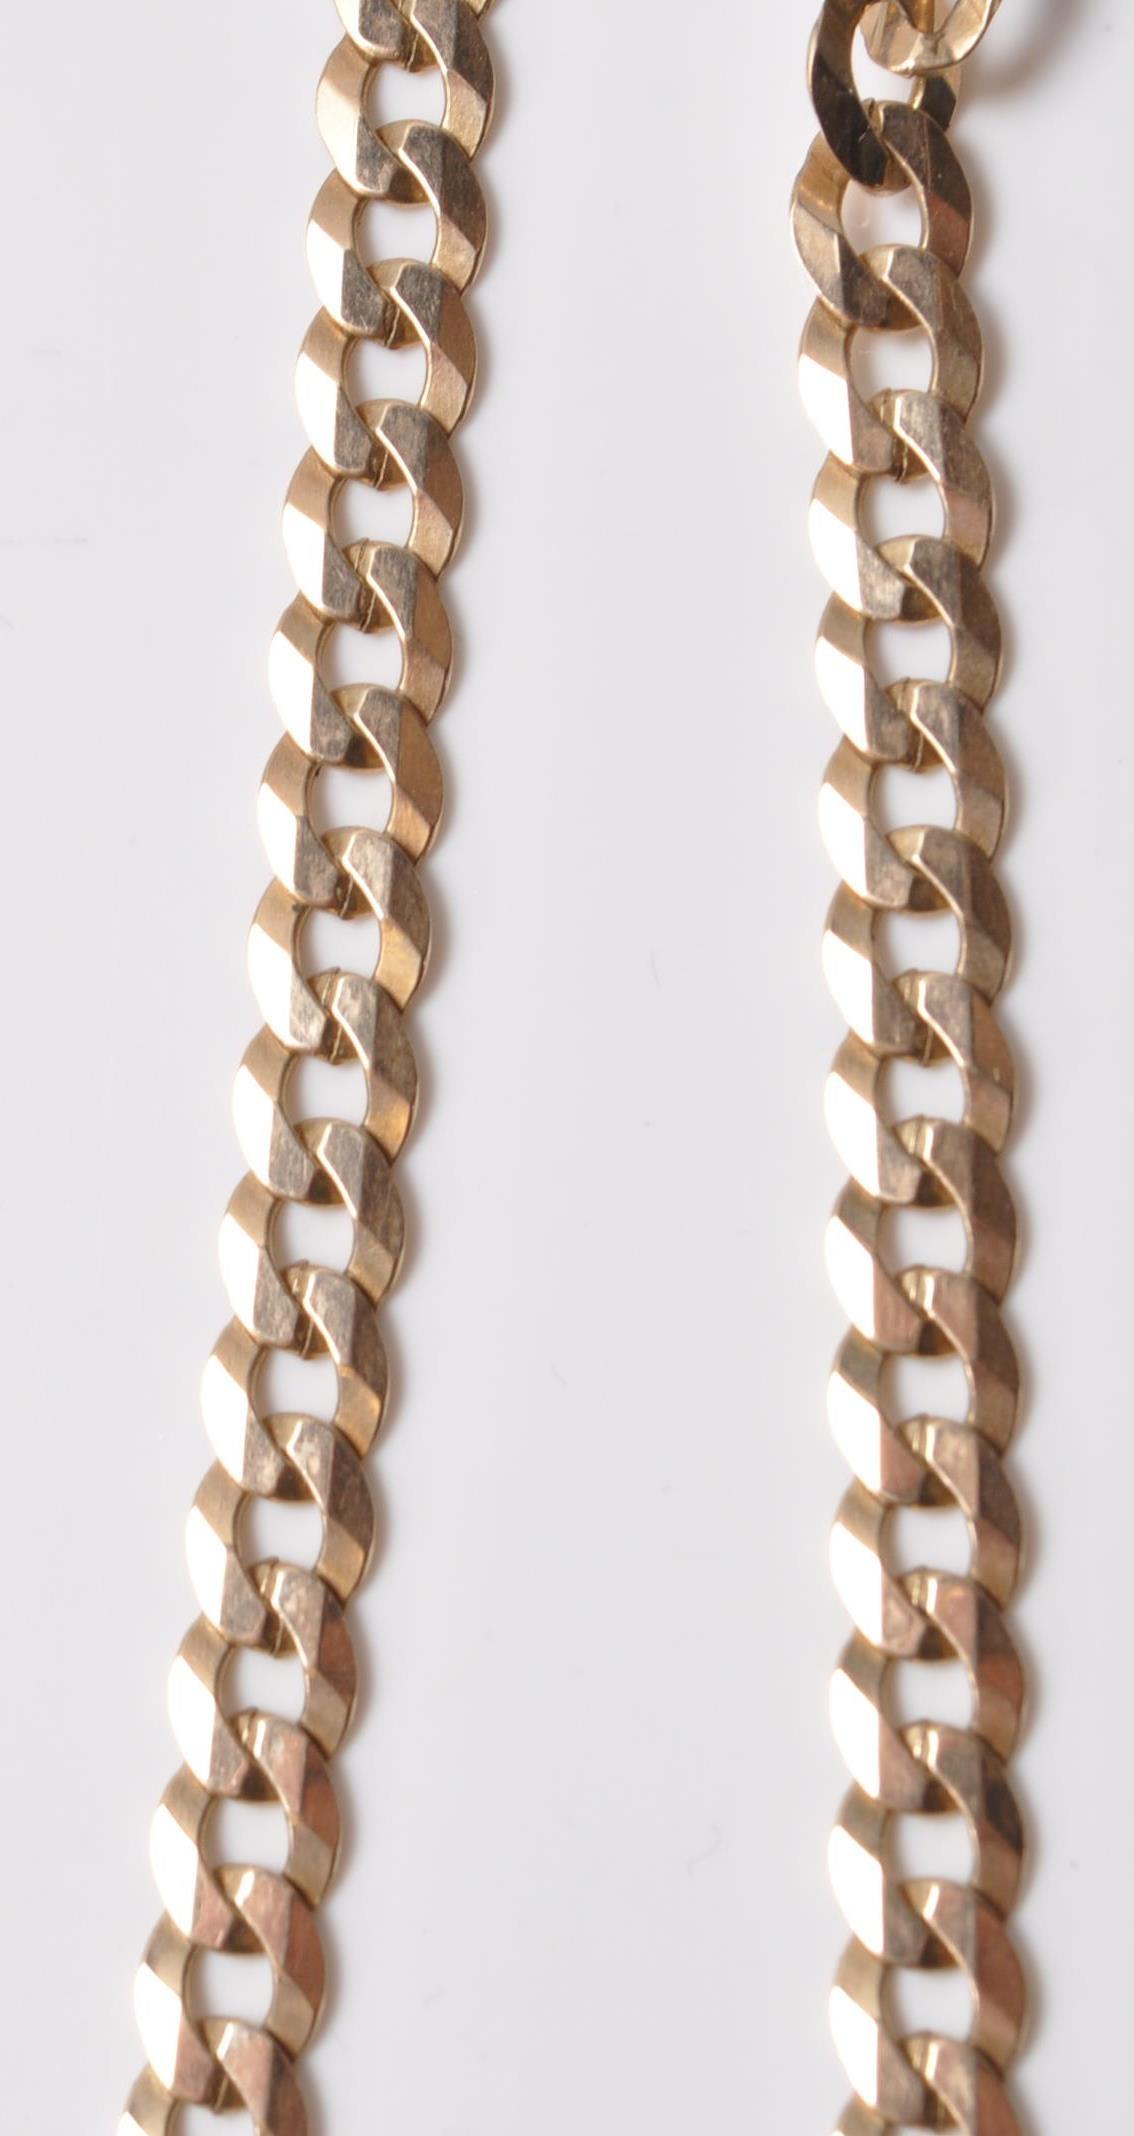 9CT GOLD FLAT LINK NECKLACE - Image 3 of 5